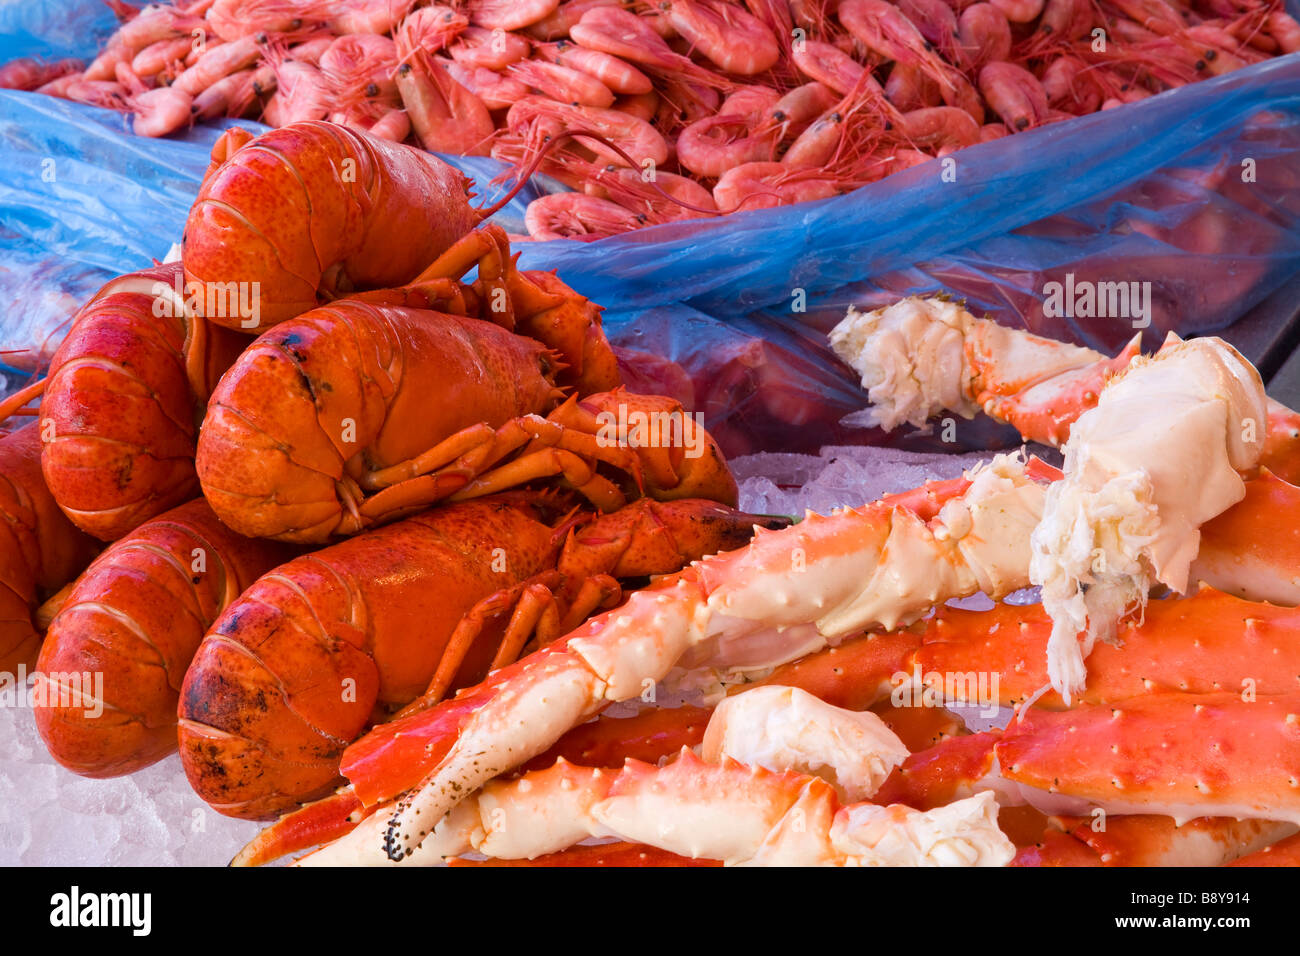 Seafood at a market stall, Torget Fish Market, Bergen, Hordaland County, Norway - Stock Image